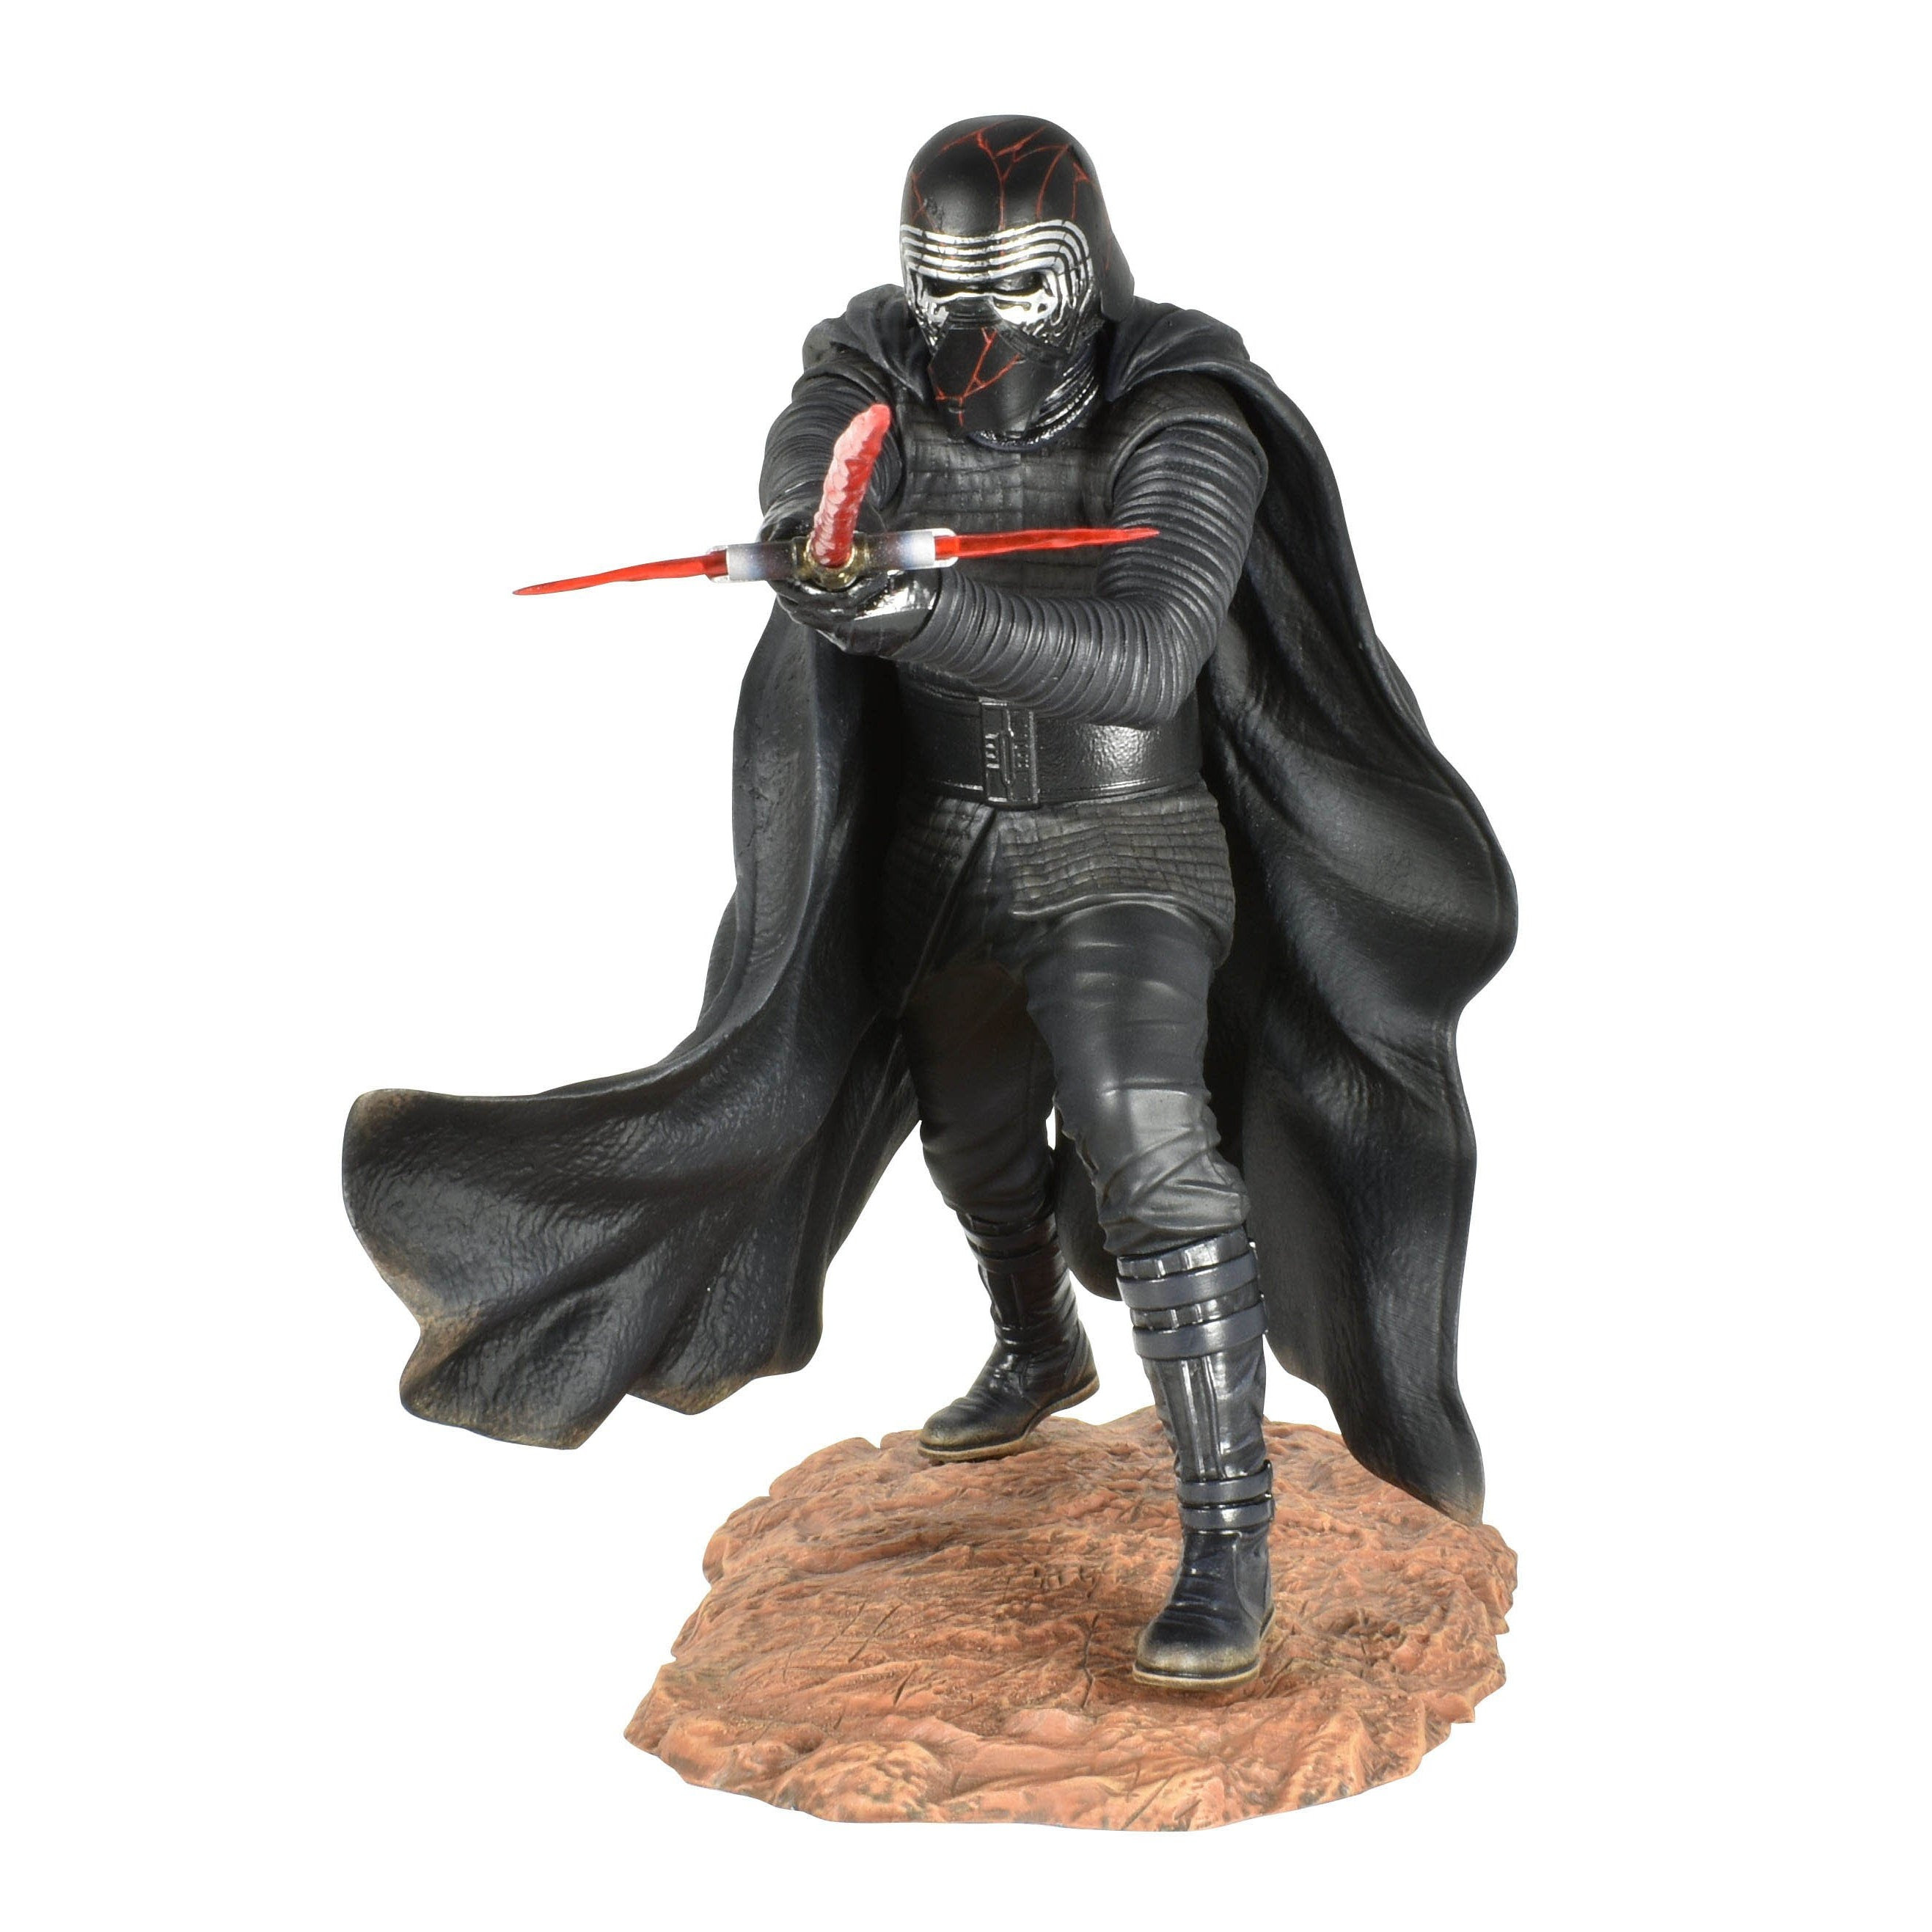 Image of Star Wars Premier Collection Episode 9 Kylo Ren Statue - MAY 2020